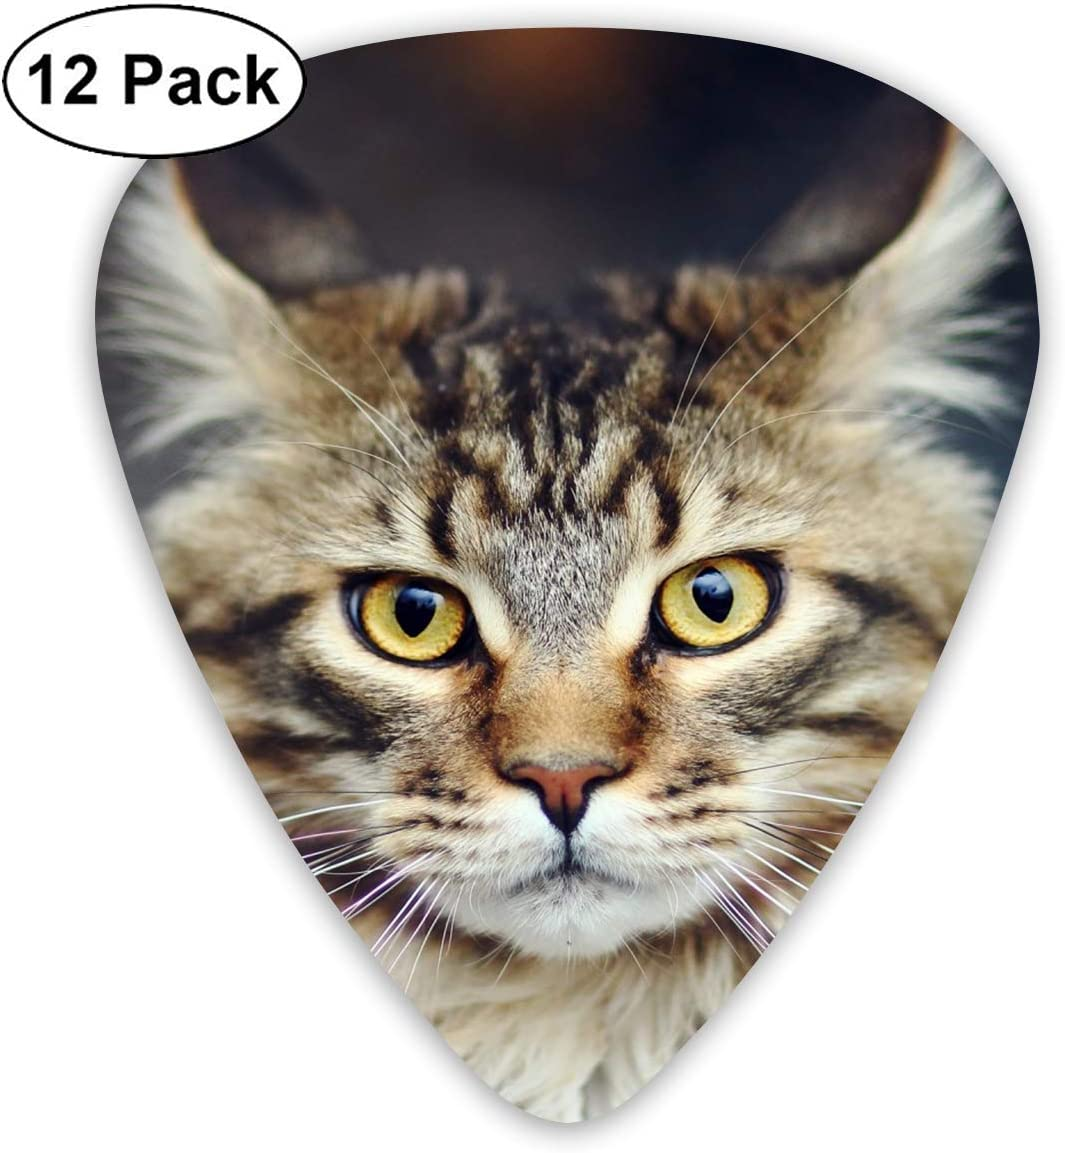 12 Pack Guitar Picks Maine Coon Cat Think, Medium and Heavy,Unique Guitar Gift for Bass, Electric & Acoustic Guitars: Amazon.es: Instrumentos musicales